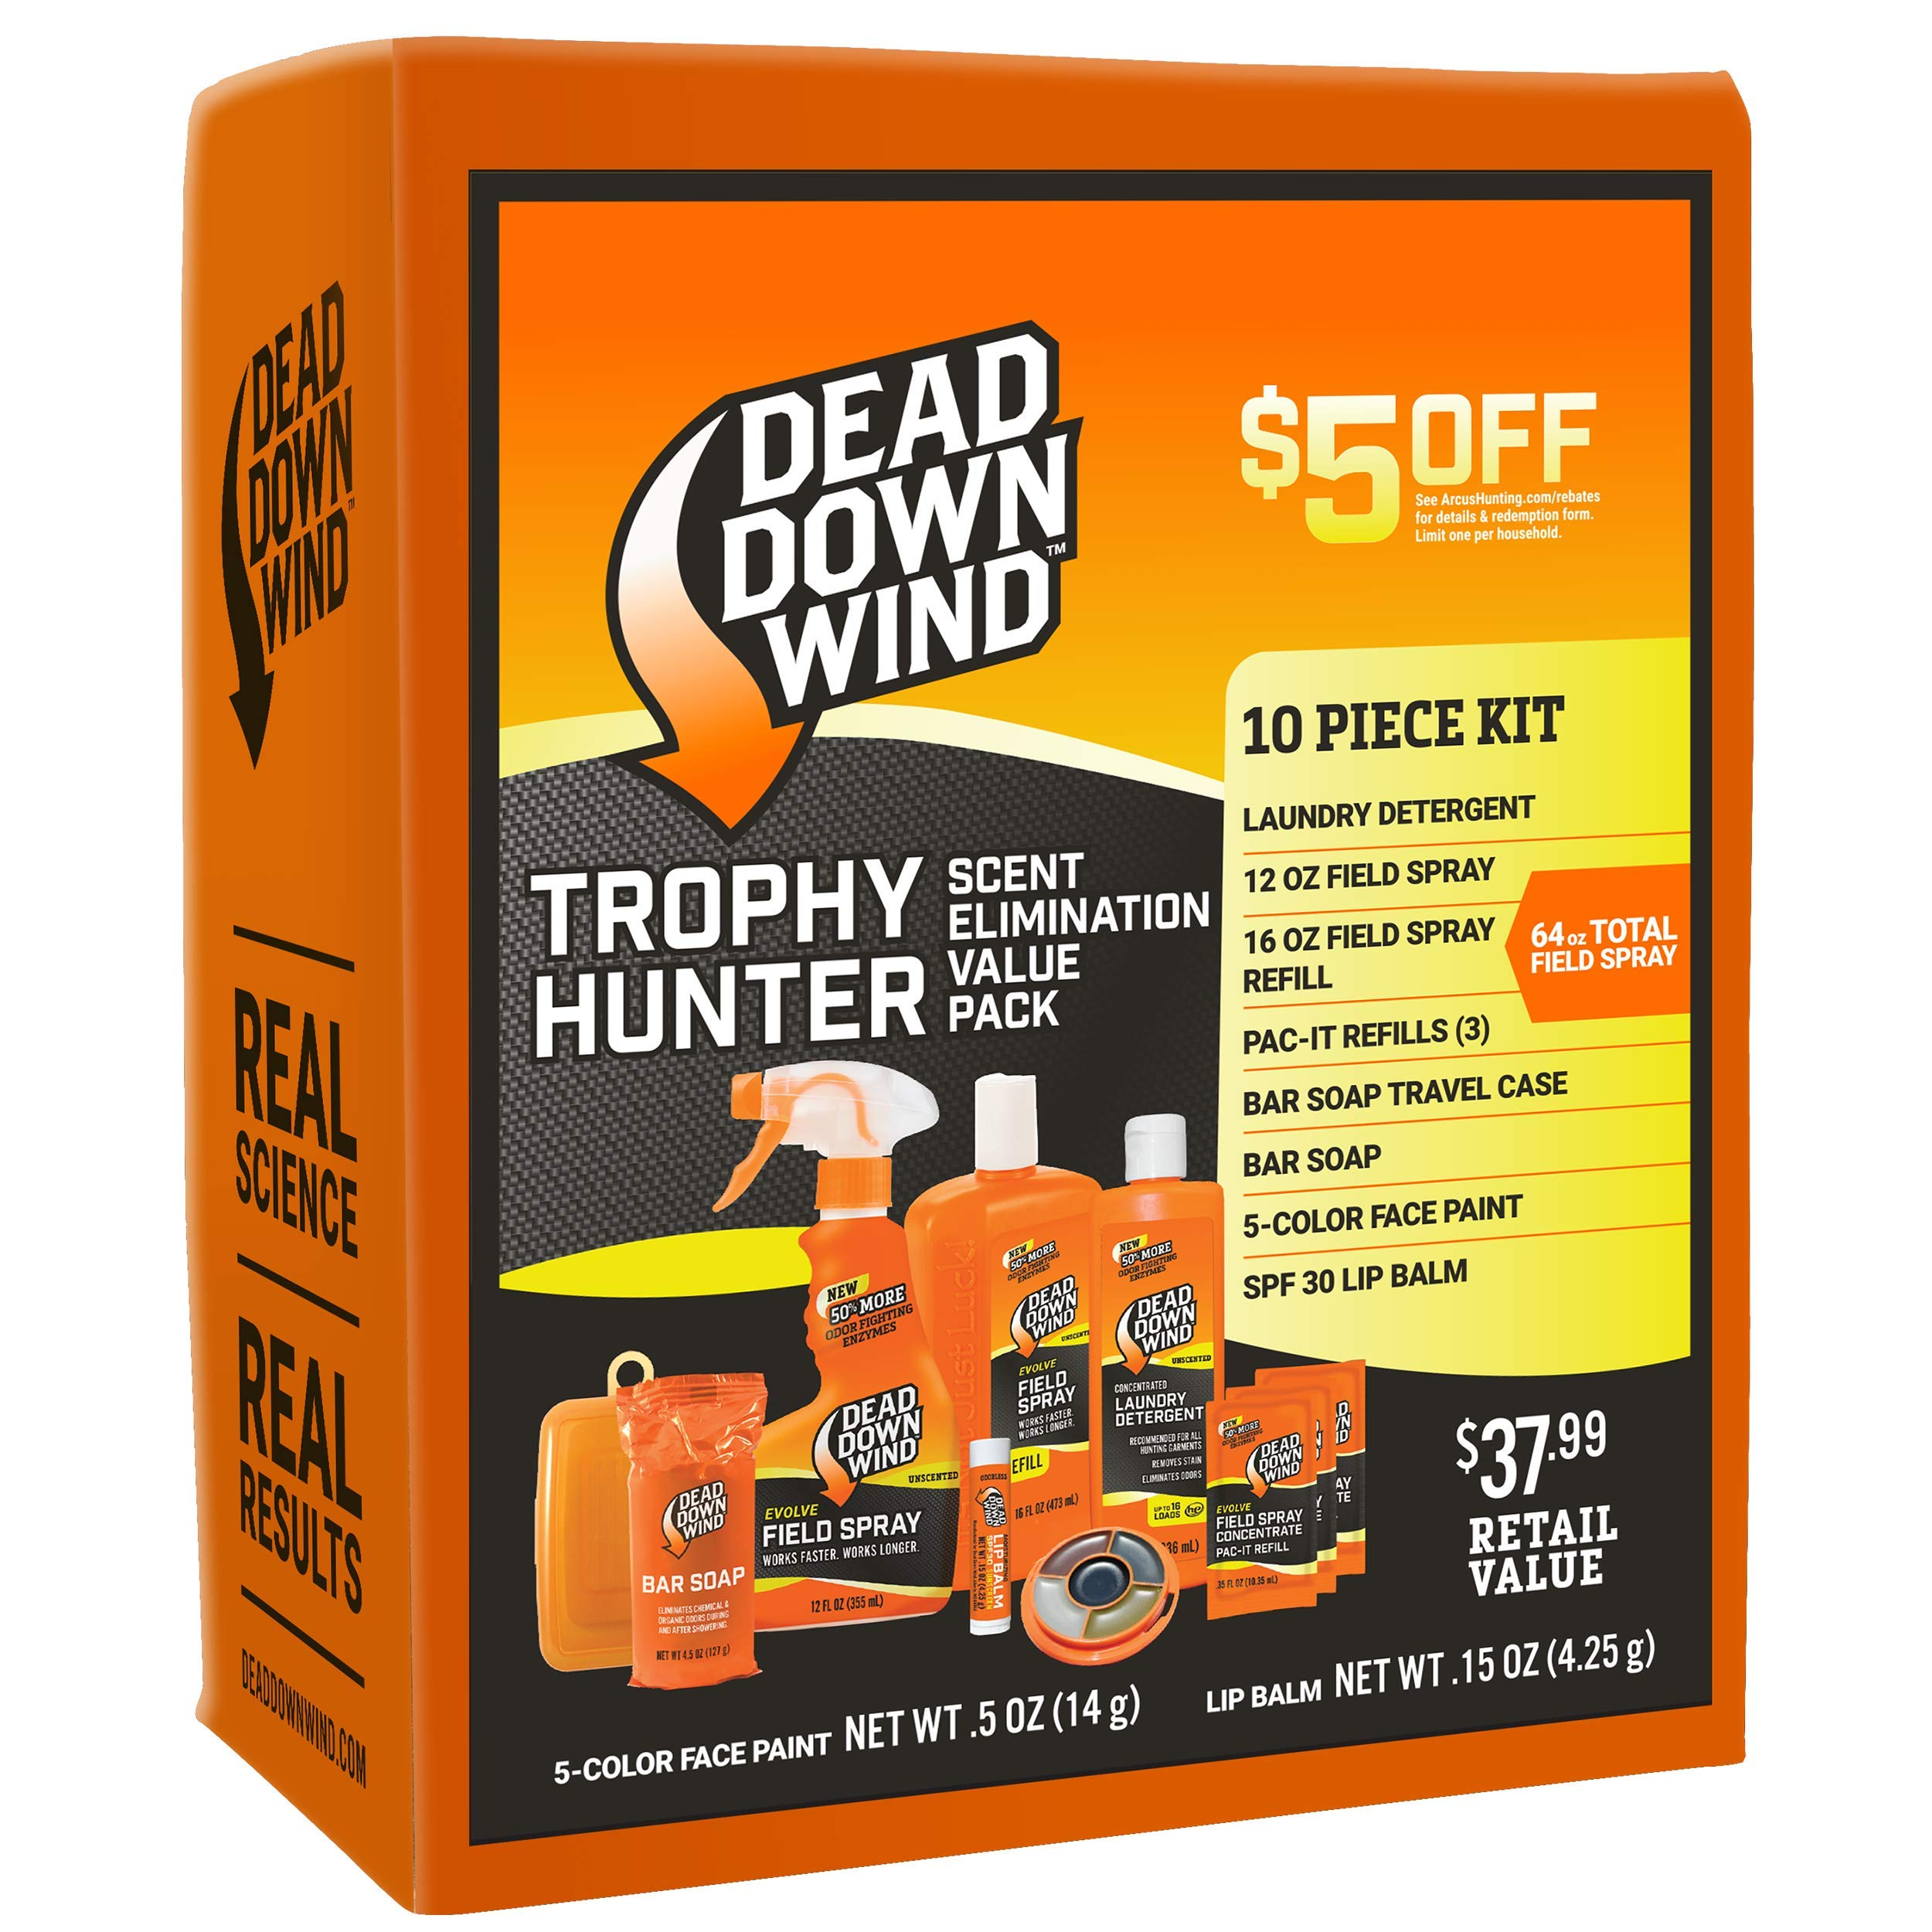 Dead Down Wind Trophy Hunter Kit - Scent Elimination for Hunting Gear, 10 Piece Value Pack by Dead Down Wind (Image #1)